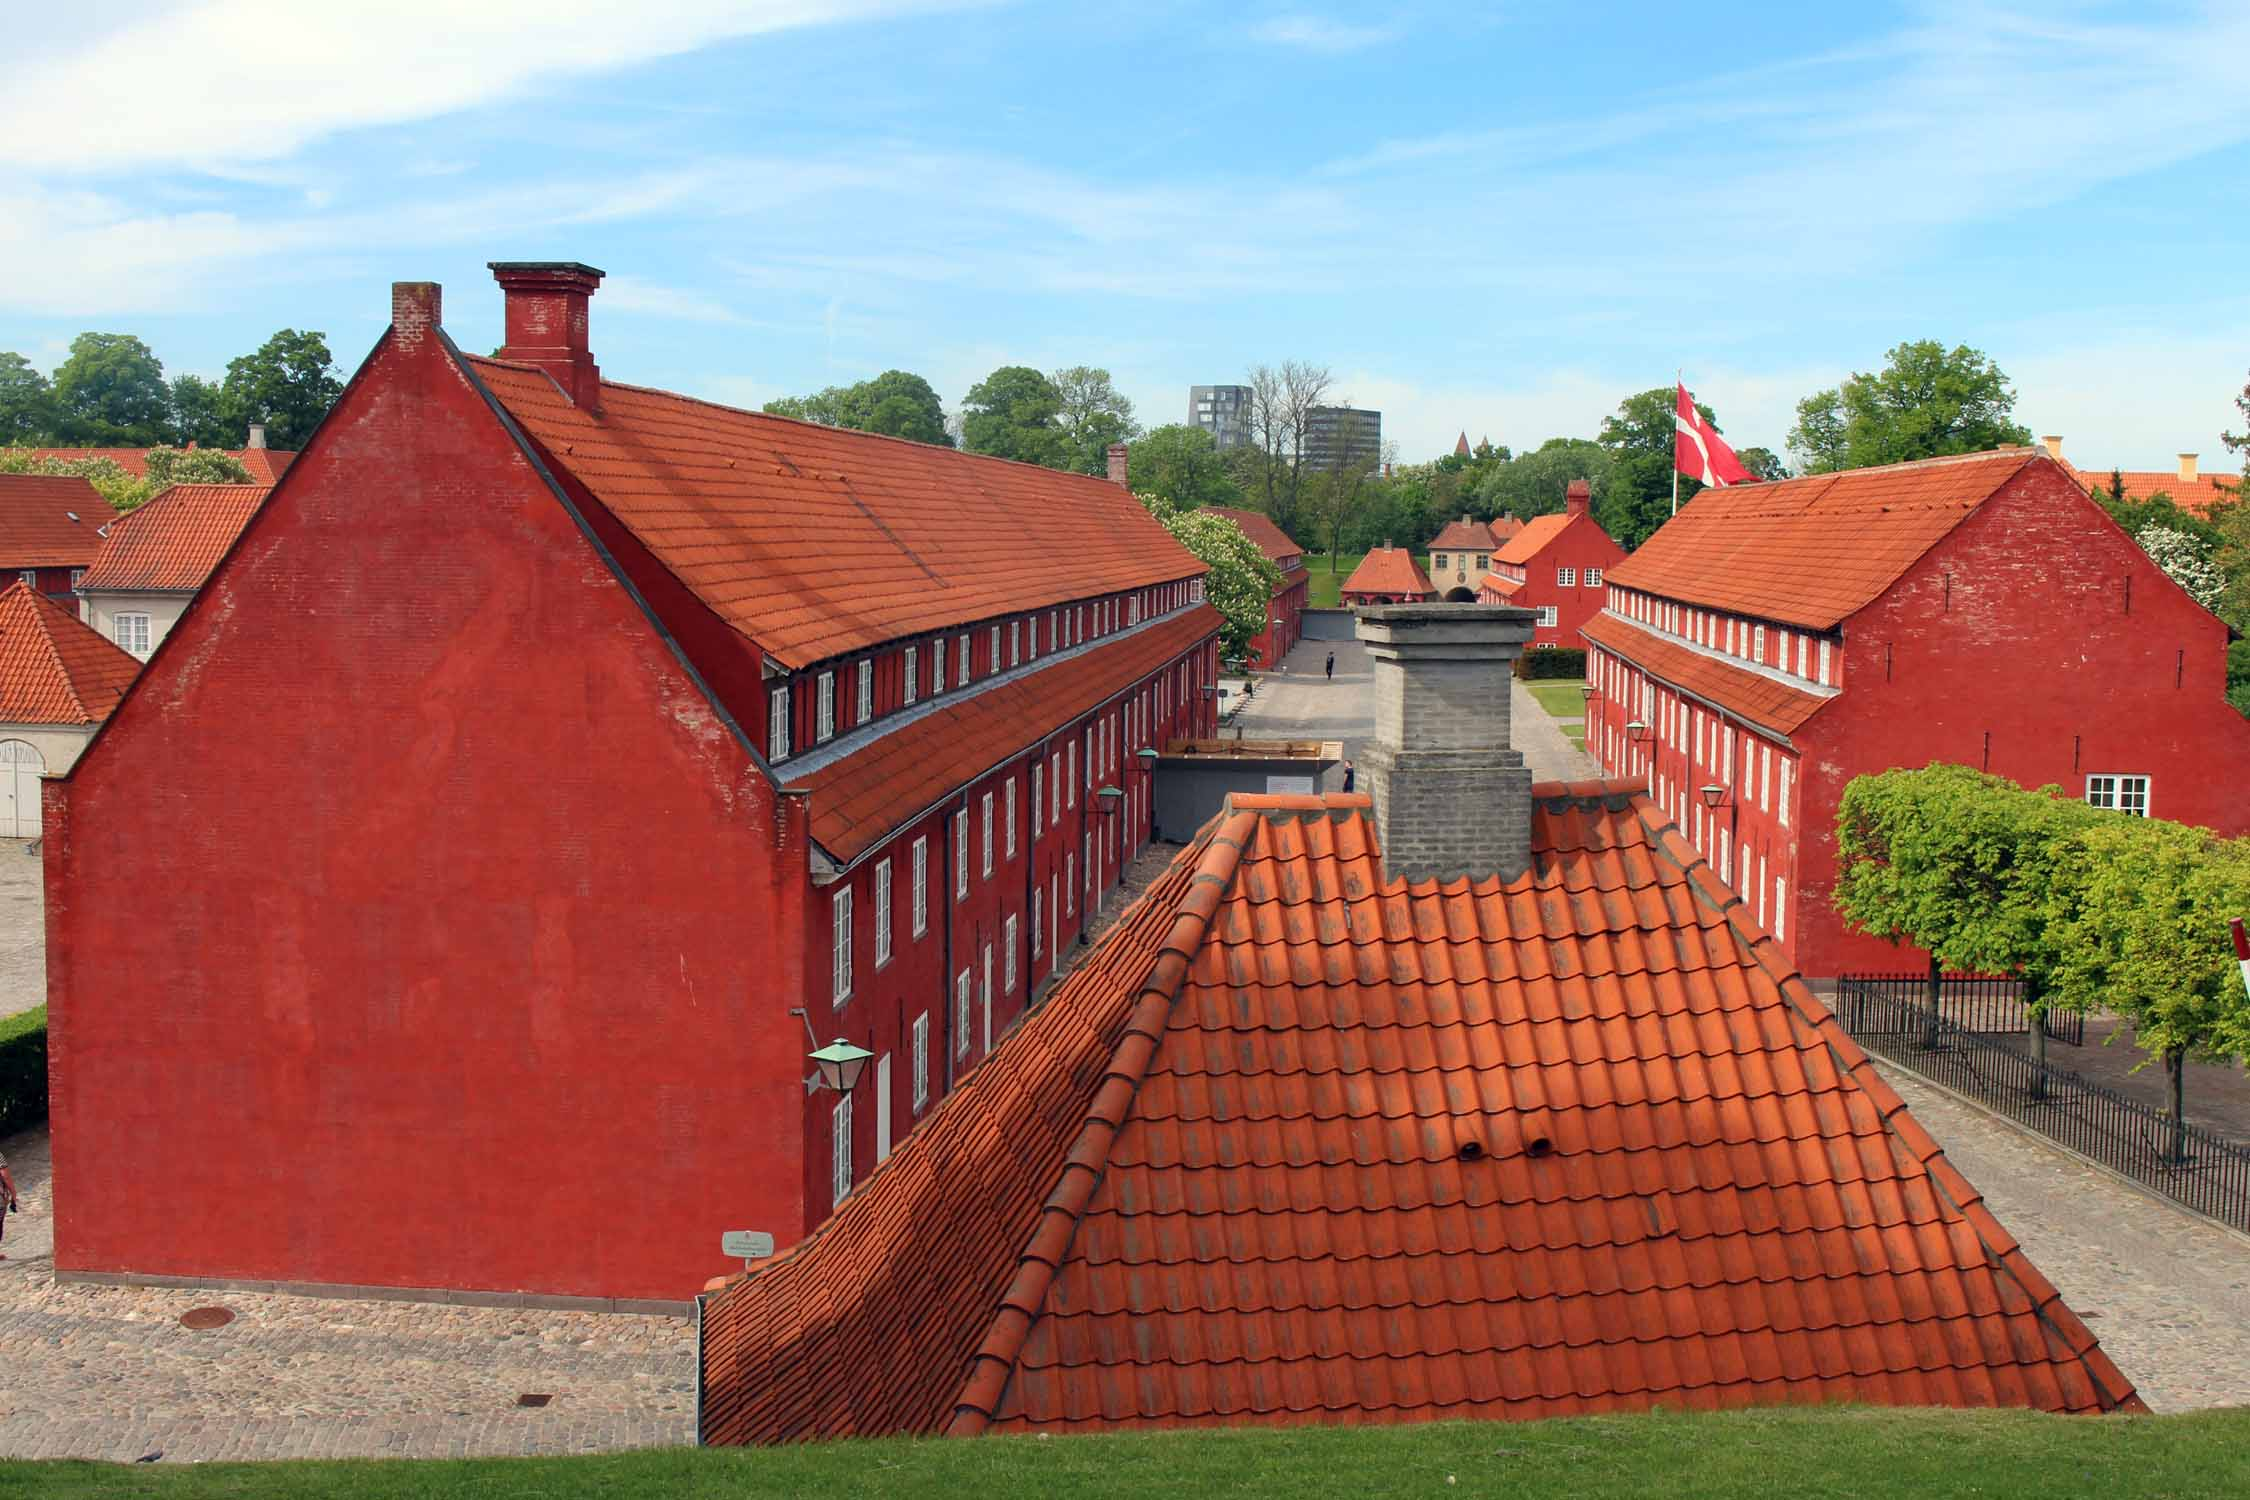 Copenhague, citadelle, bâtiment